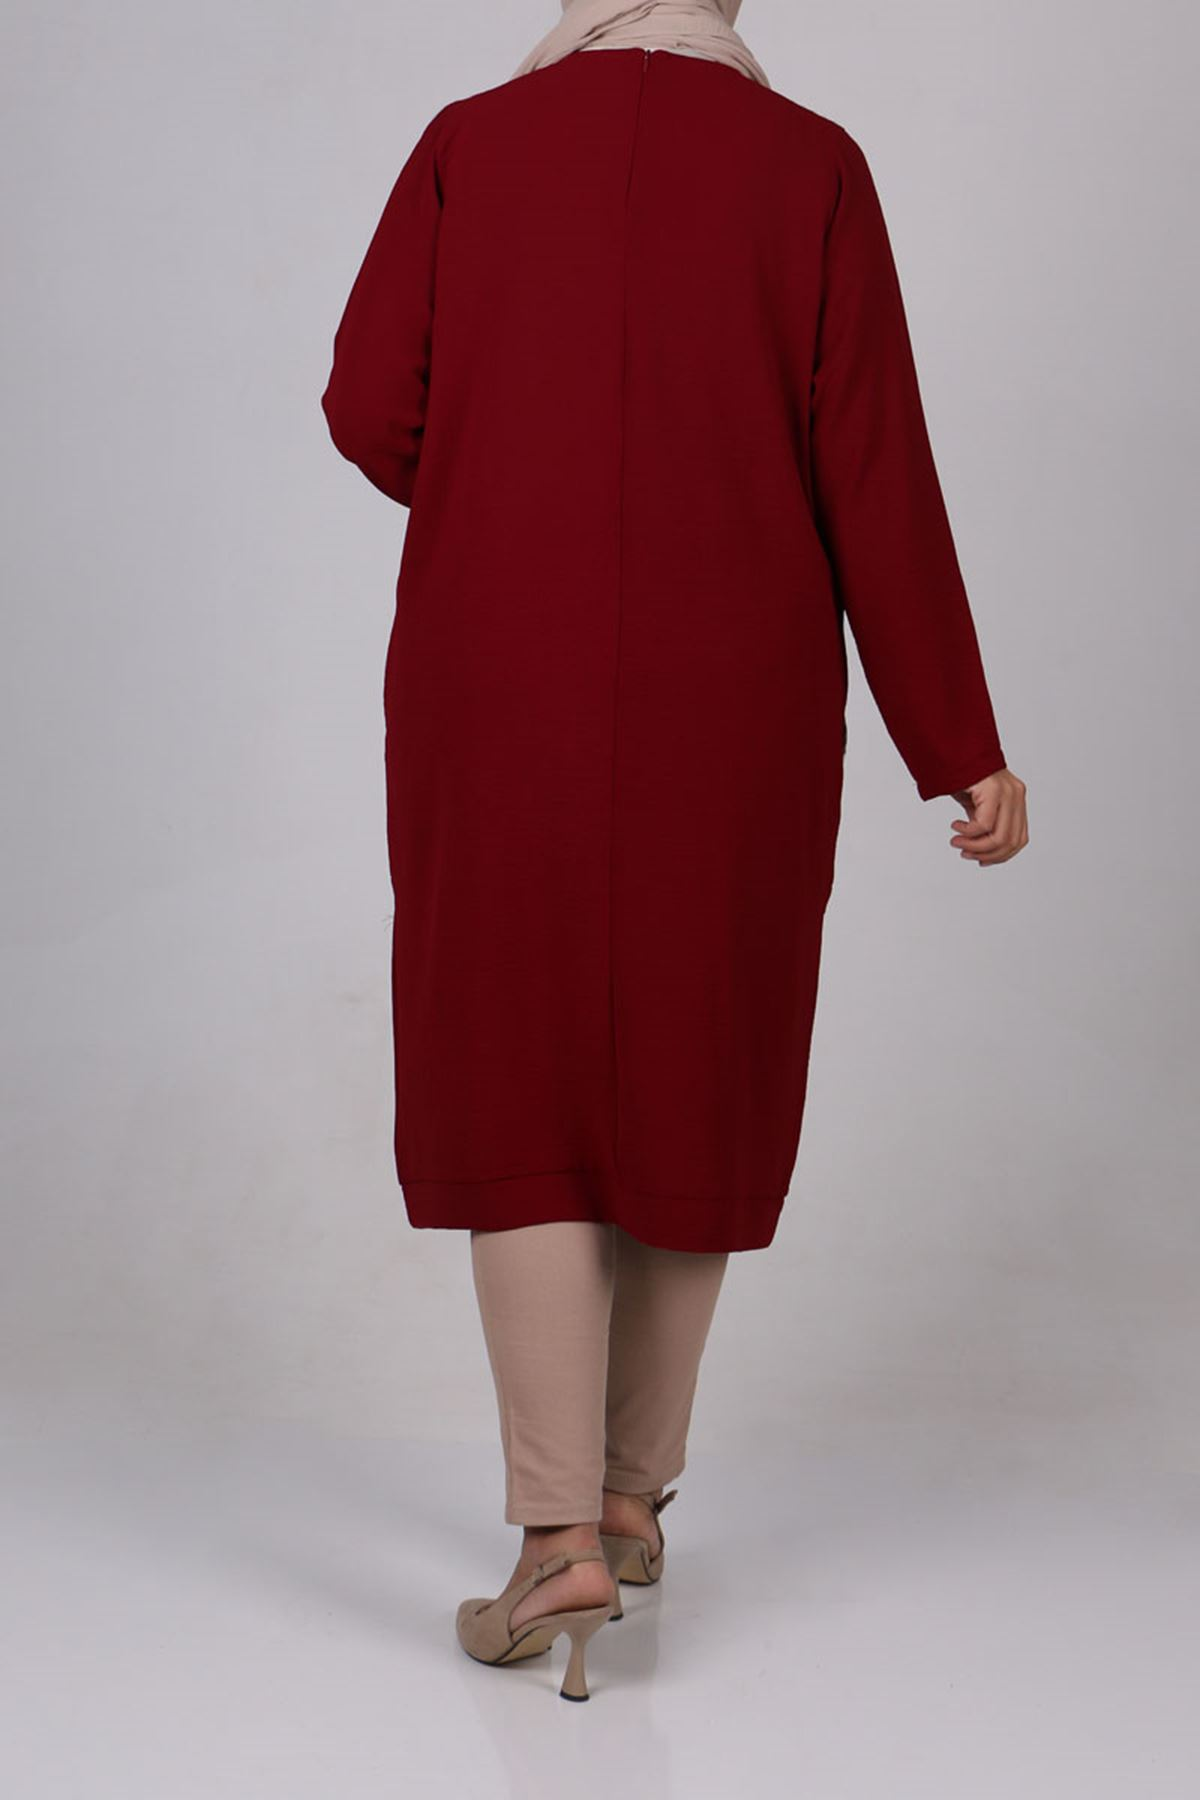 8426 Plus Size Tunic - Coral Pink